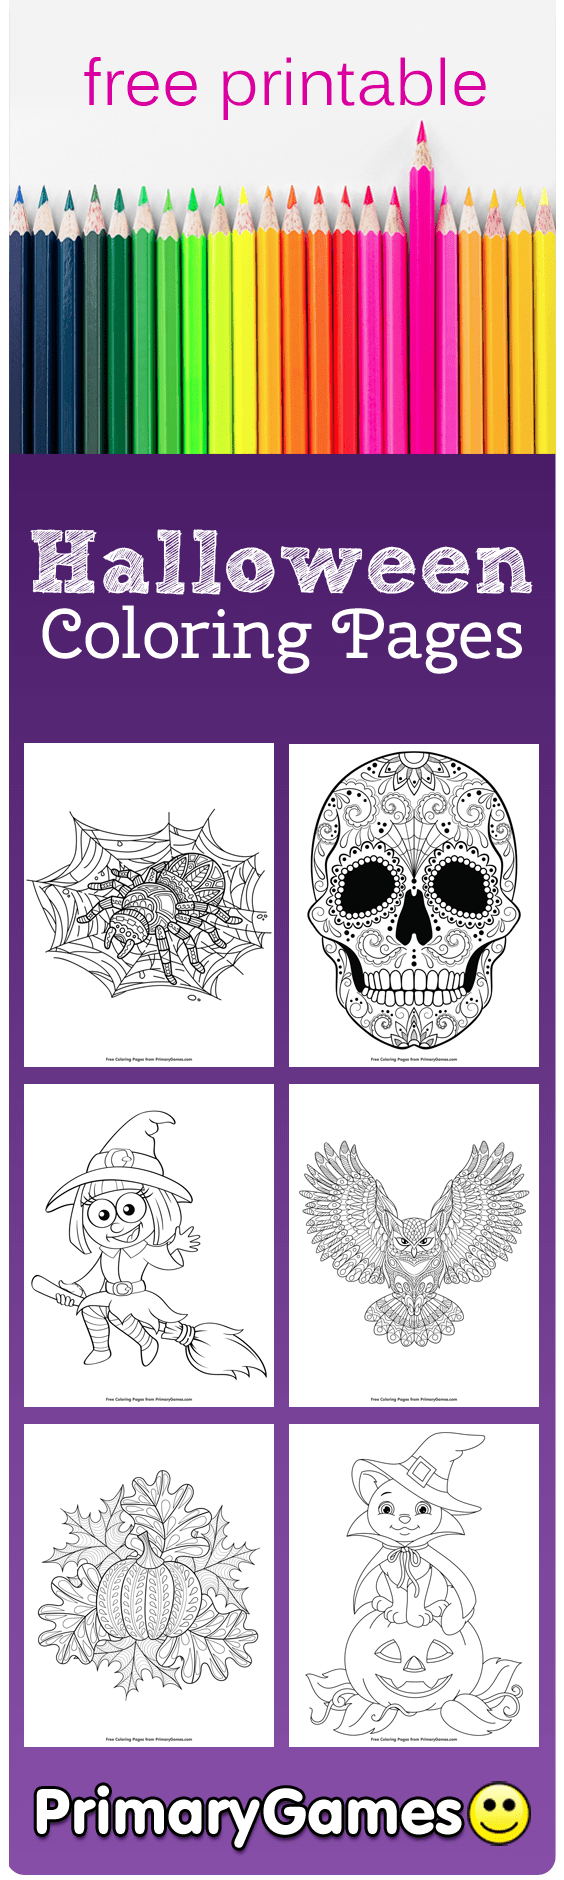 Halloween Coloring Pages Printable Coloring Pages Primarygames